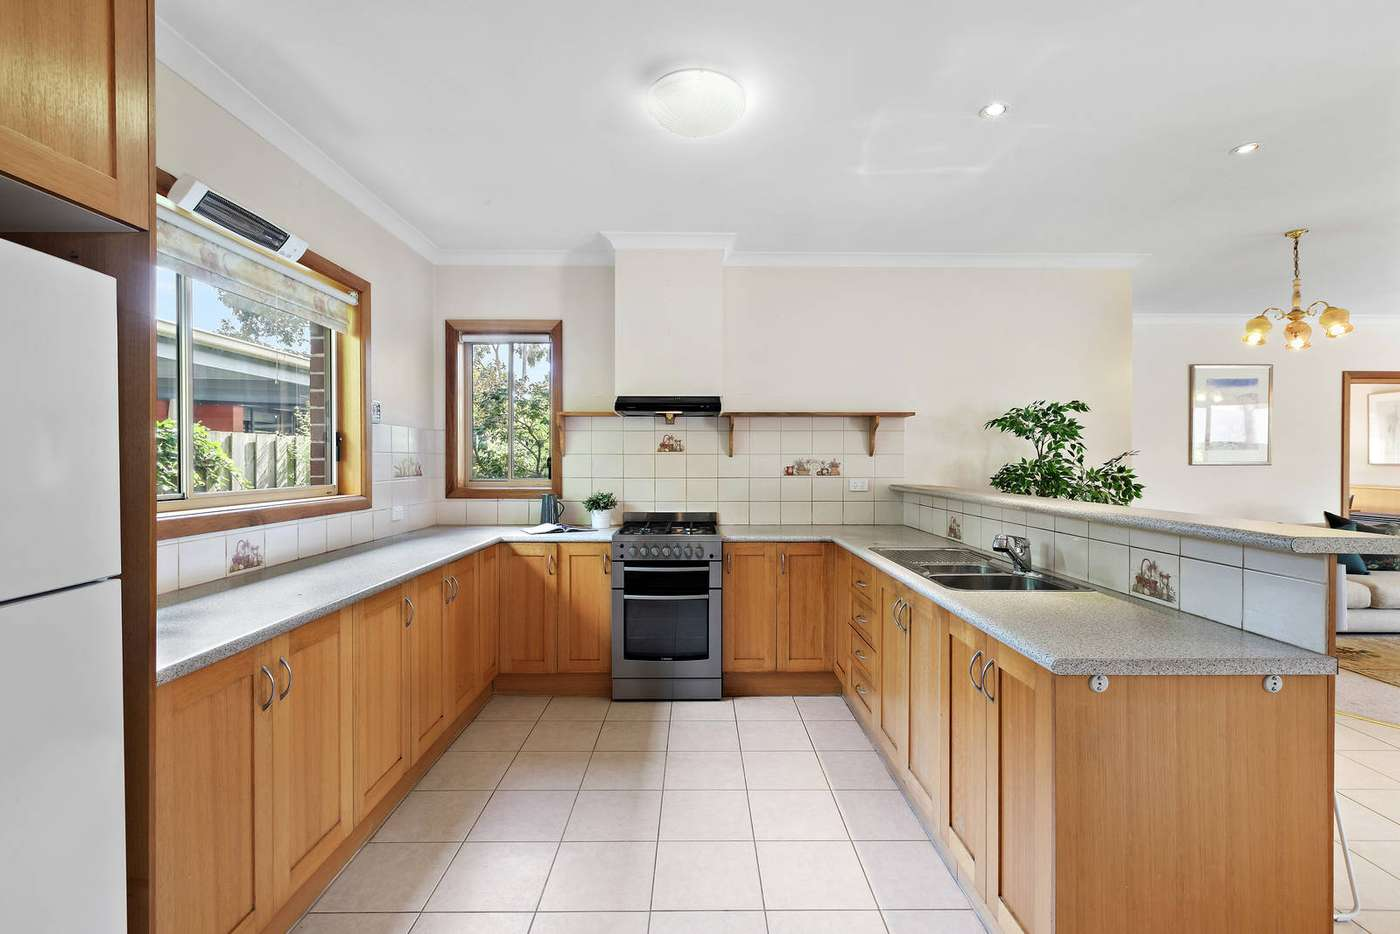 Sixth view of Homely house listing, 2/18 Roseberry Grove, Glen Huntly VIC 3163